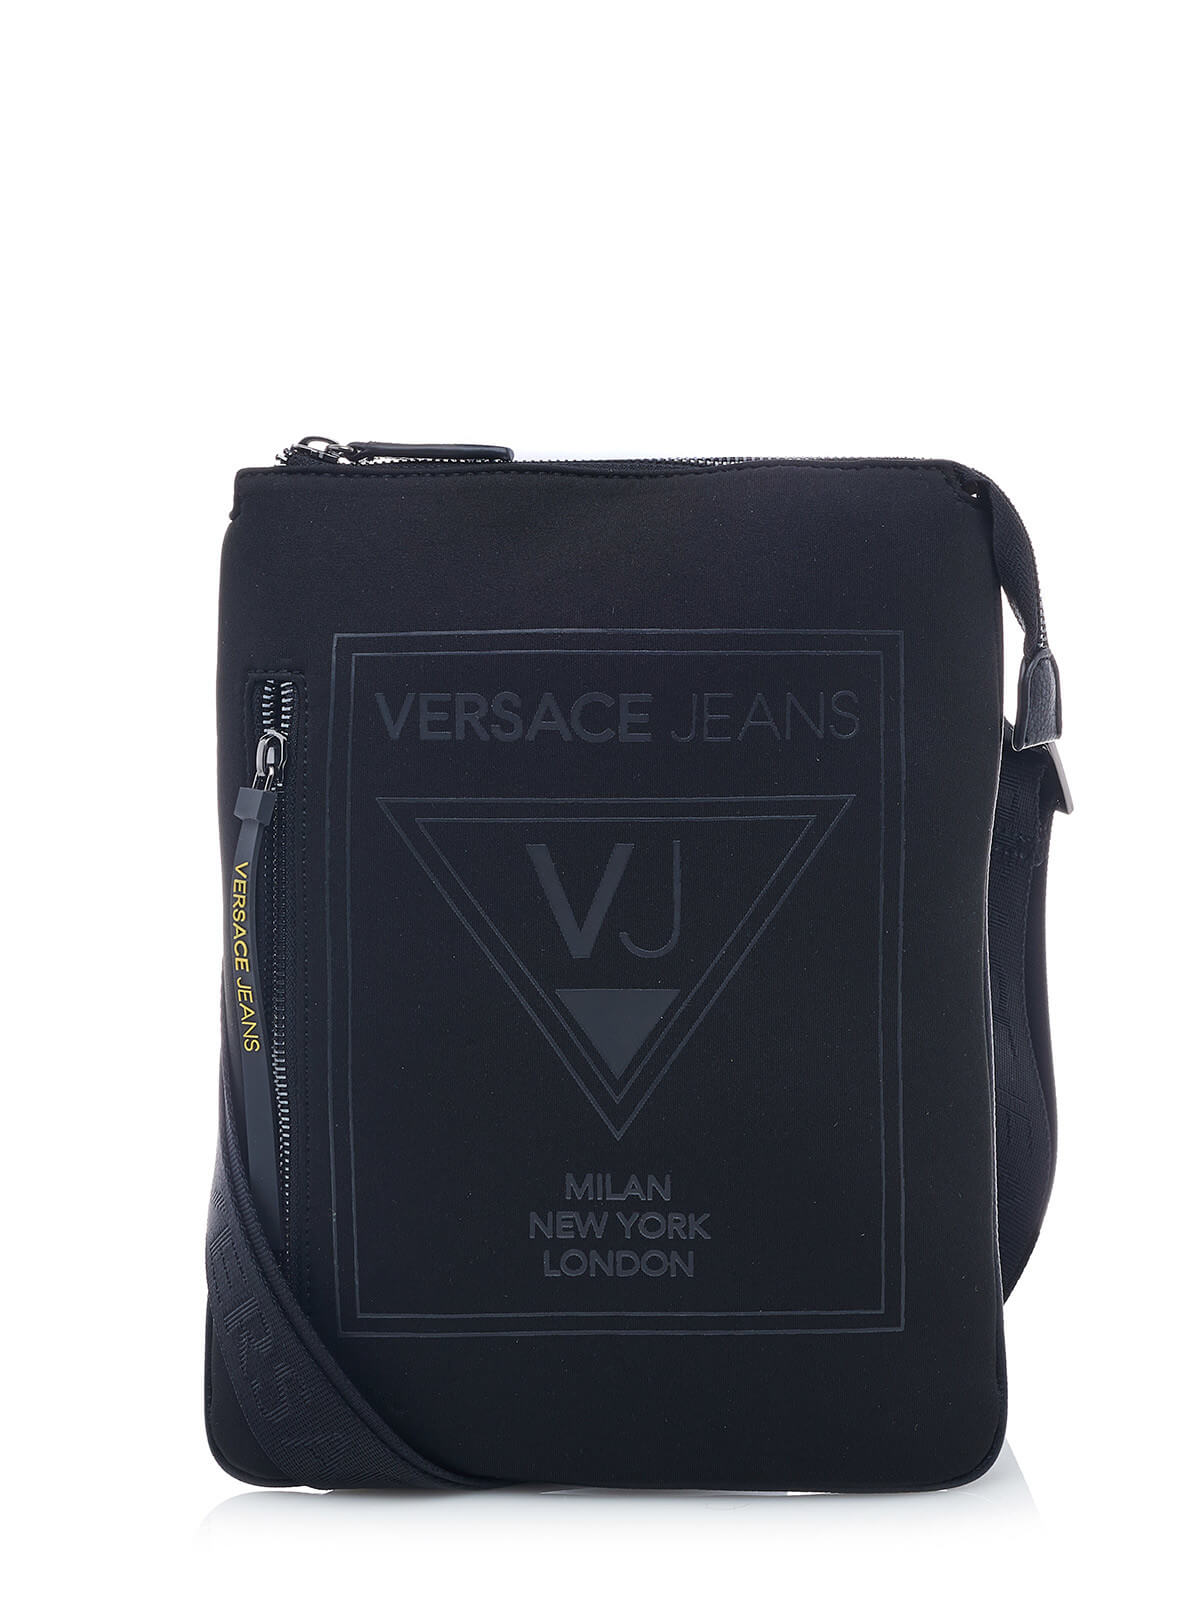 5b32ee5688 Versace Jeans Couture bag